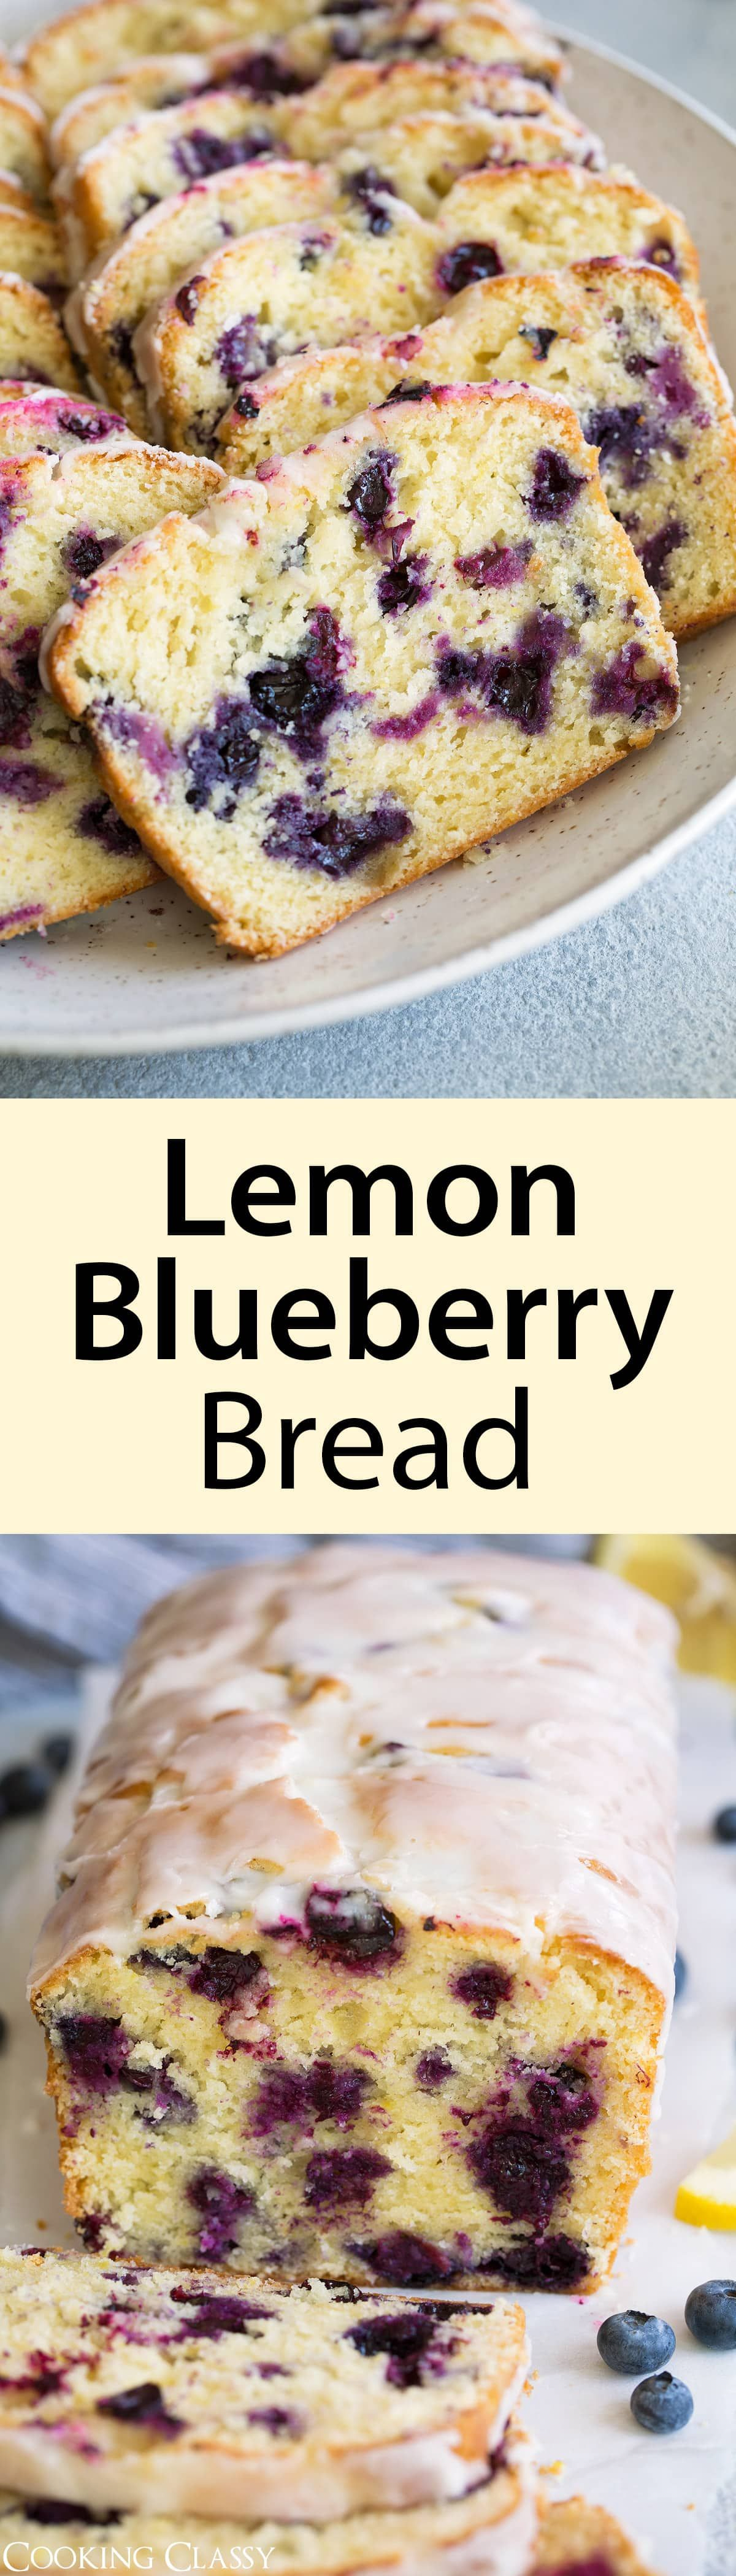 Lemon Blueberry Bread - this is the perfect summer treat! This recipe is easy to make and the end result is unbelievably satisfying. You get an amazingly moist loaf of bread that's brimming with bright, fresh lemon flavor and studded with sweet blueberries in every bite. Talk about delicious!